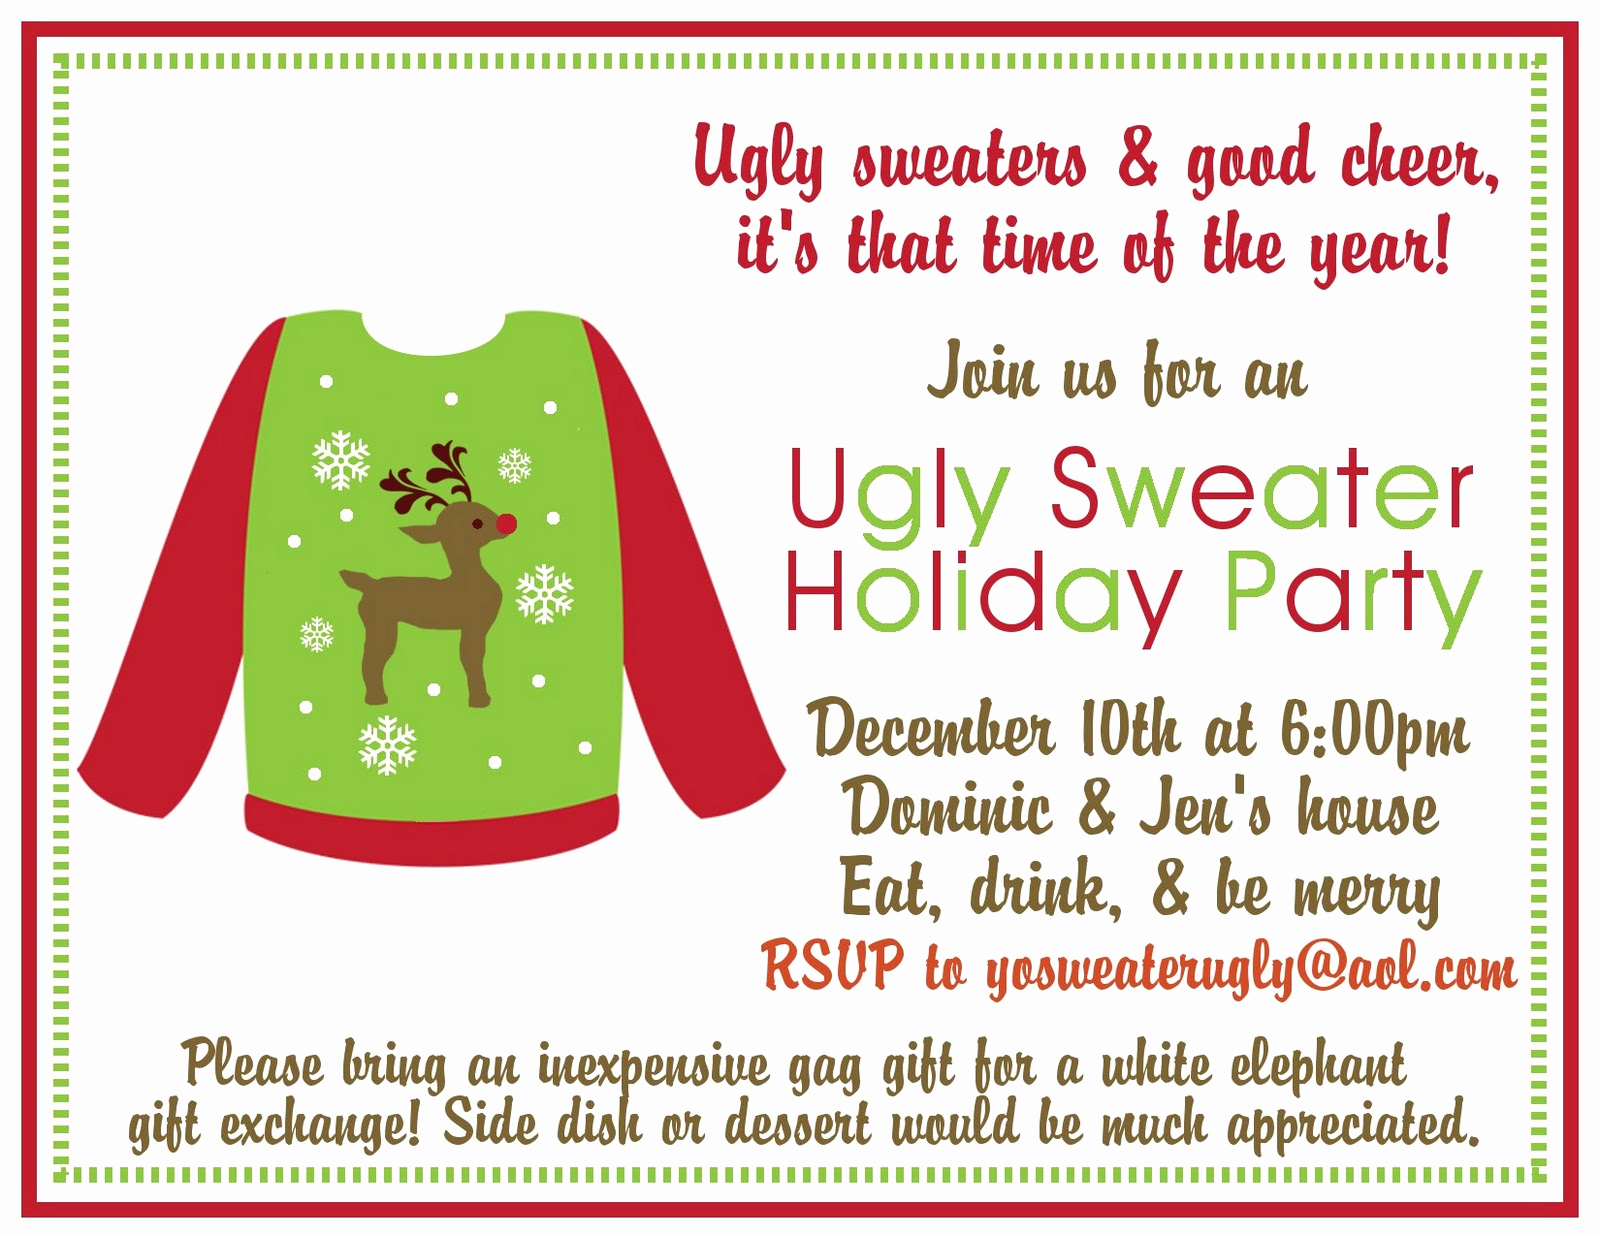 Ugly Sweater Party Invitation Templates Best Of Ugly Sweater Party Holiday Party Ideas